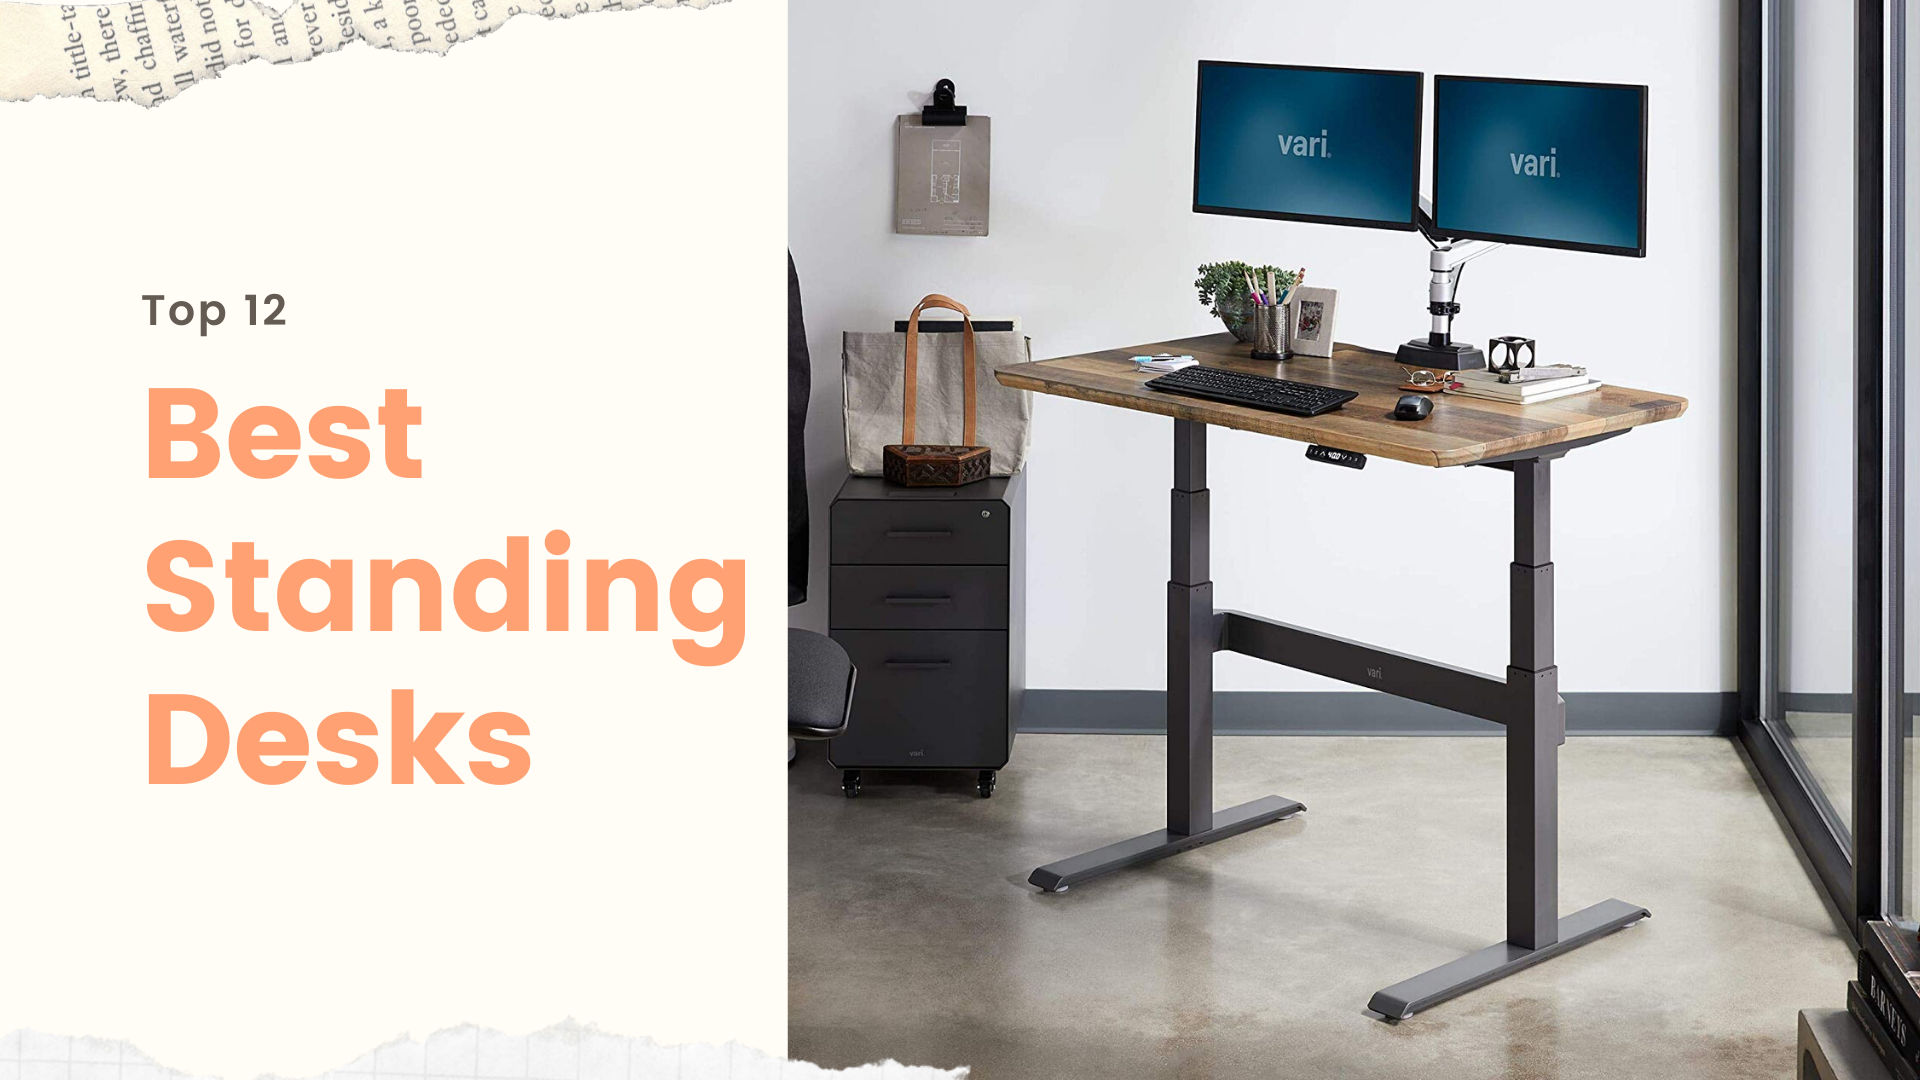 Best Standing Desks In 2020 – Top 12 Rated Reviews